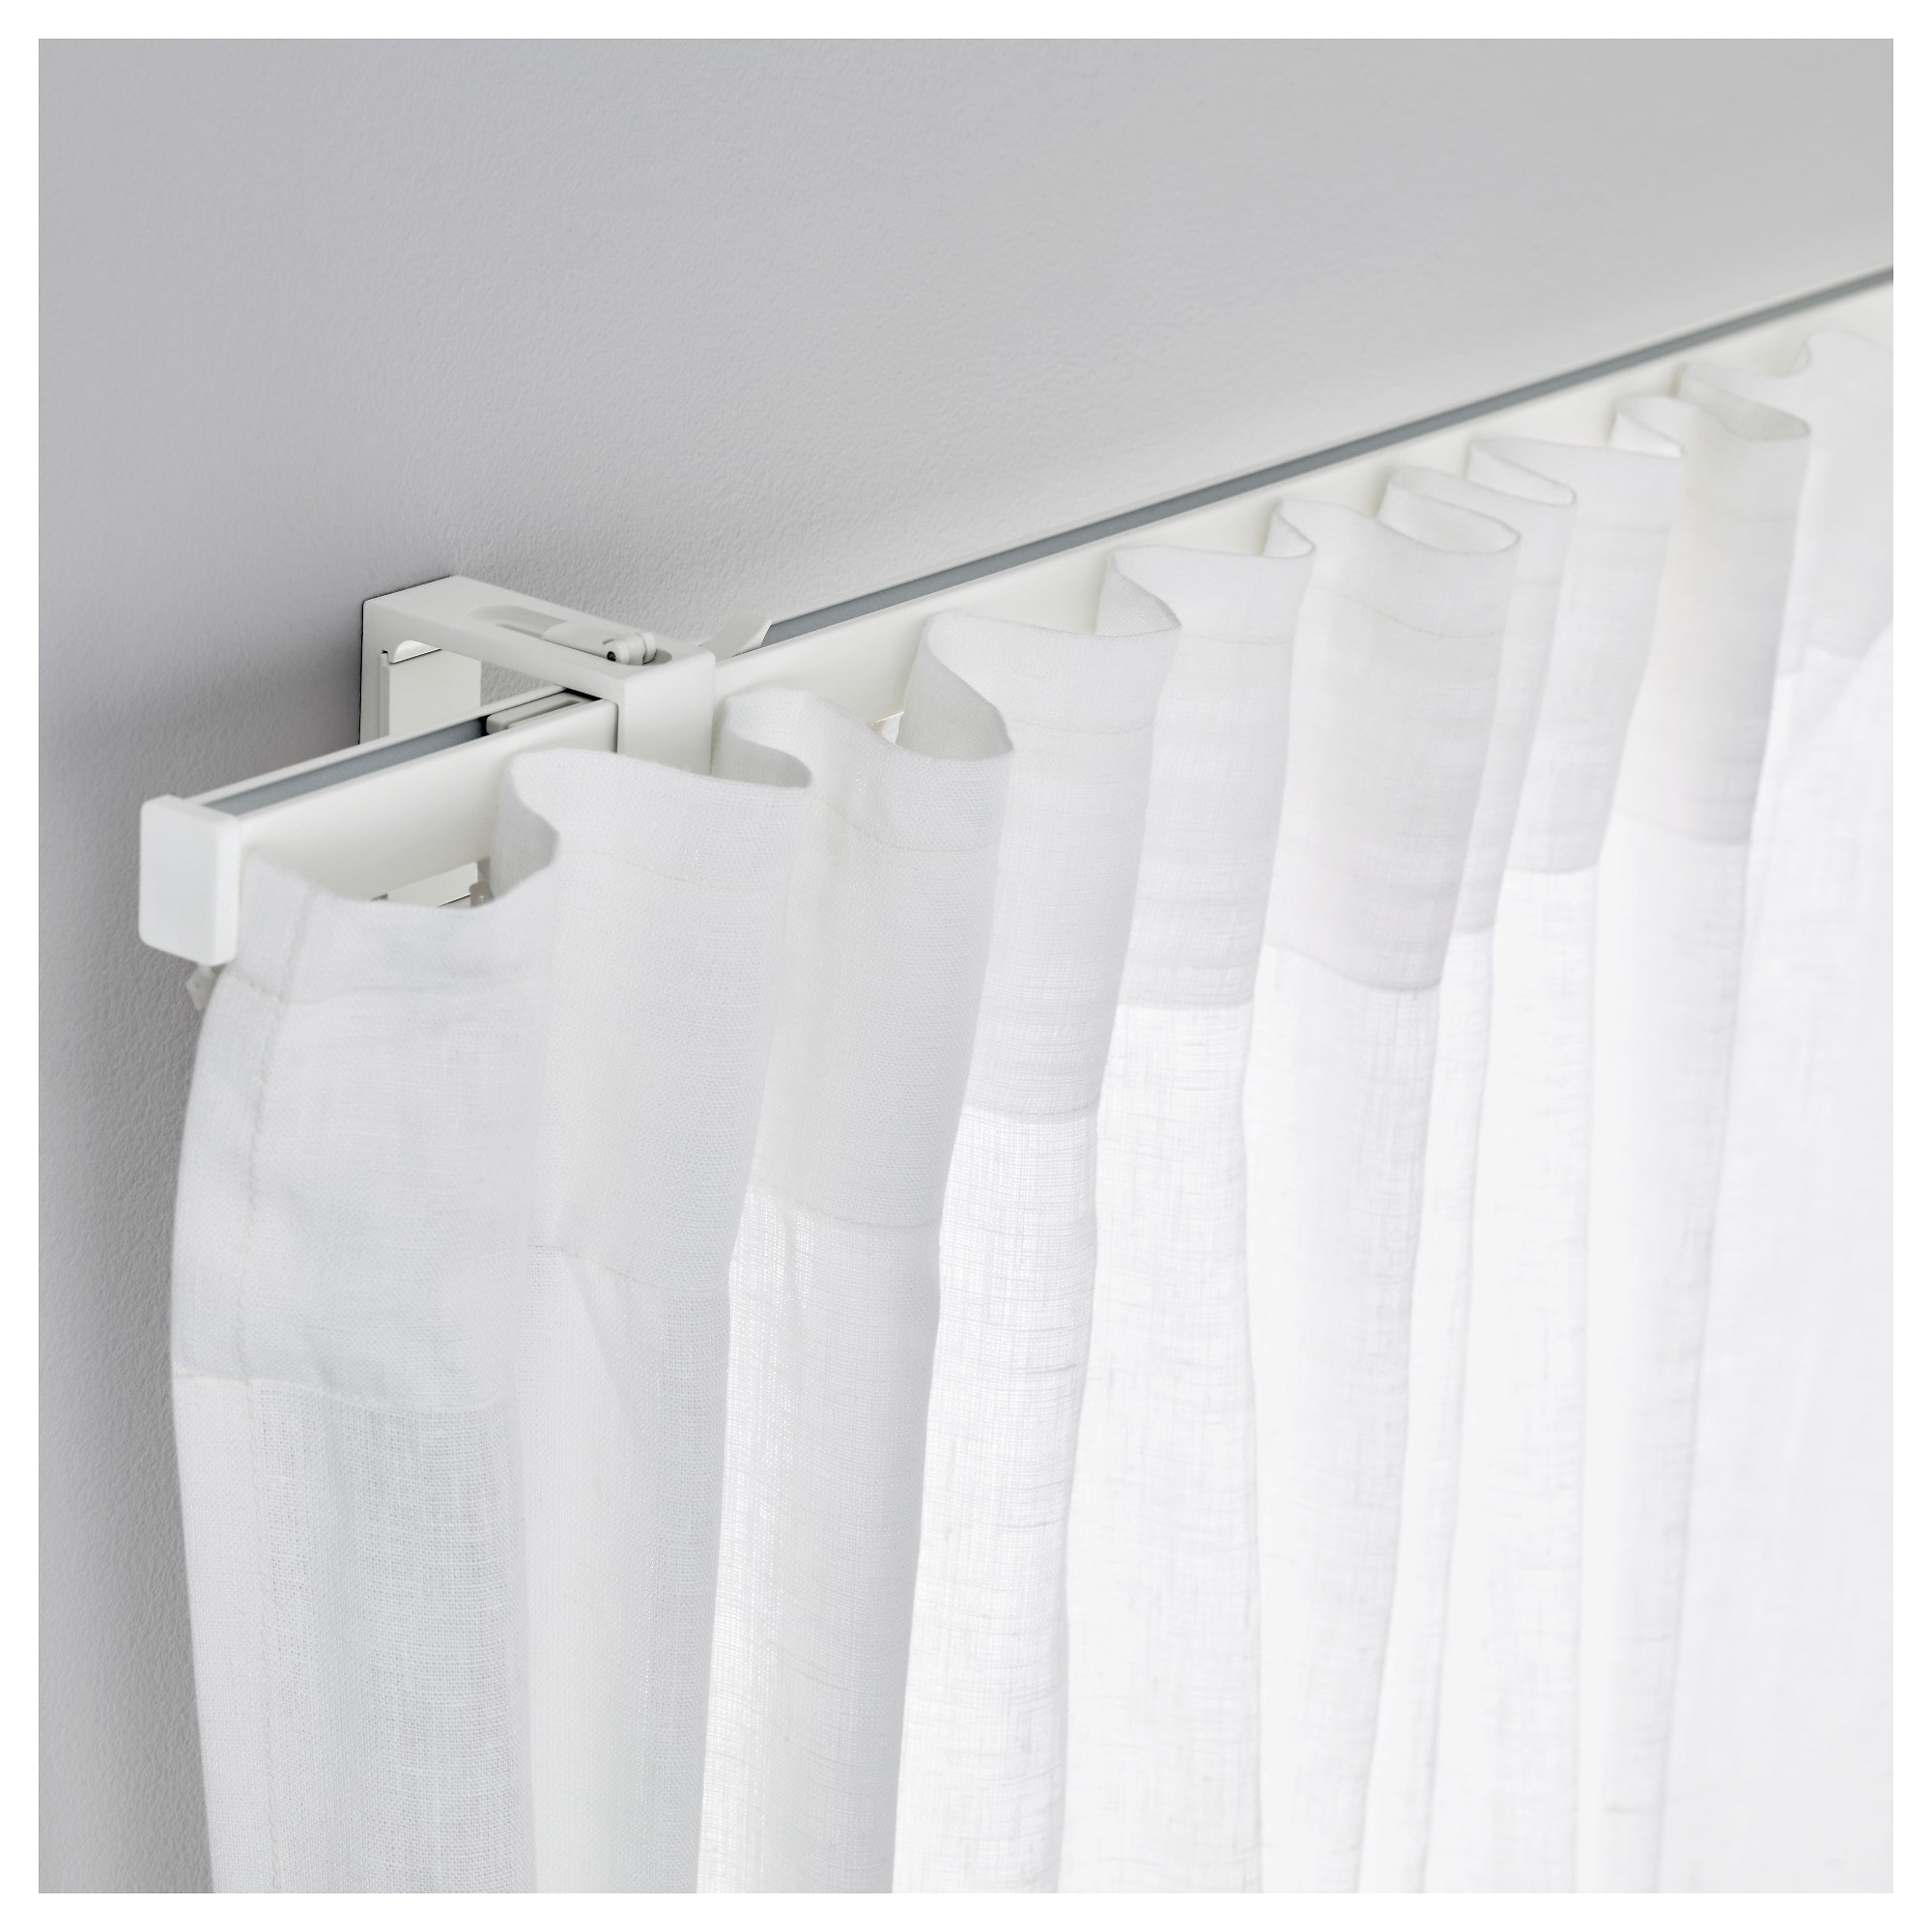 Ikea Perth Curtains Vidga Single Track Rail White In 2019 Downtown Curtain Track